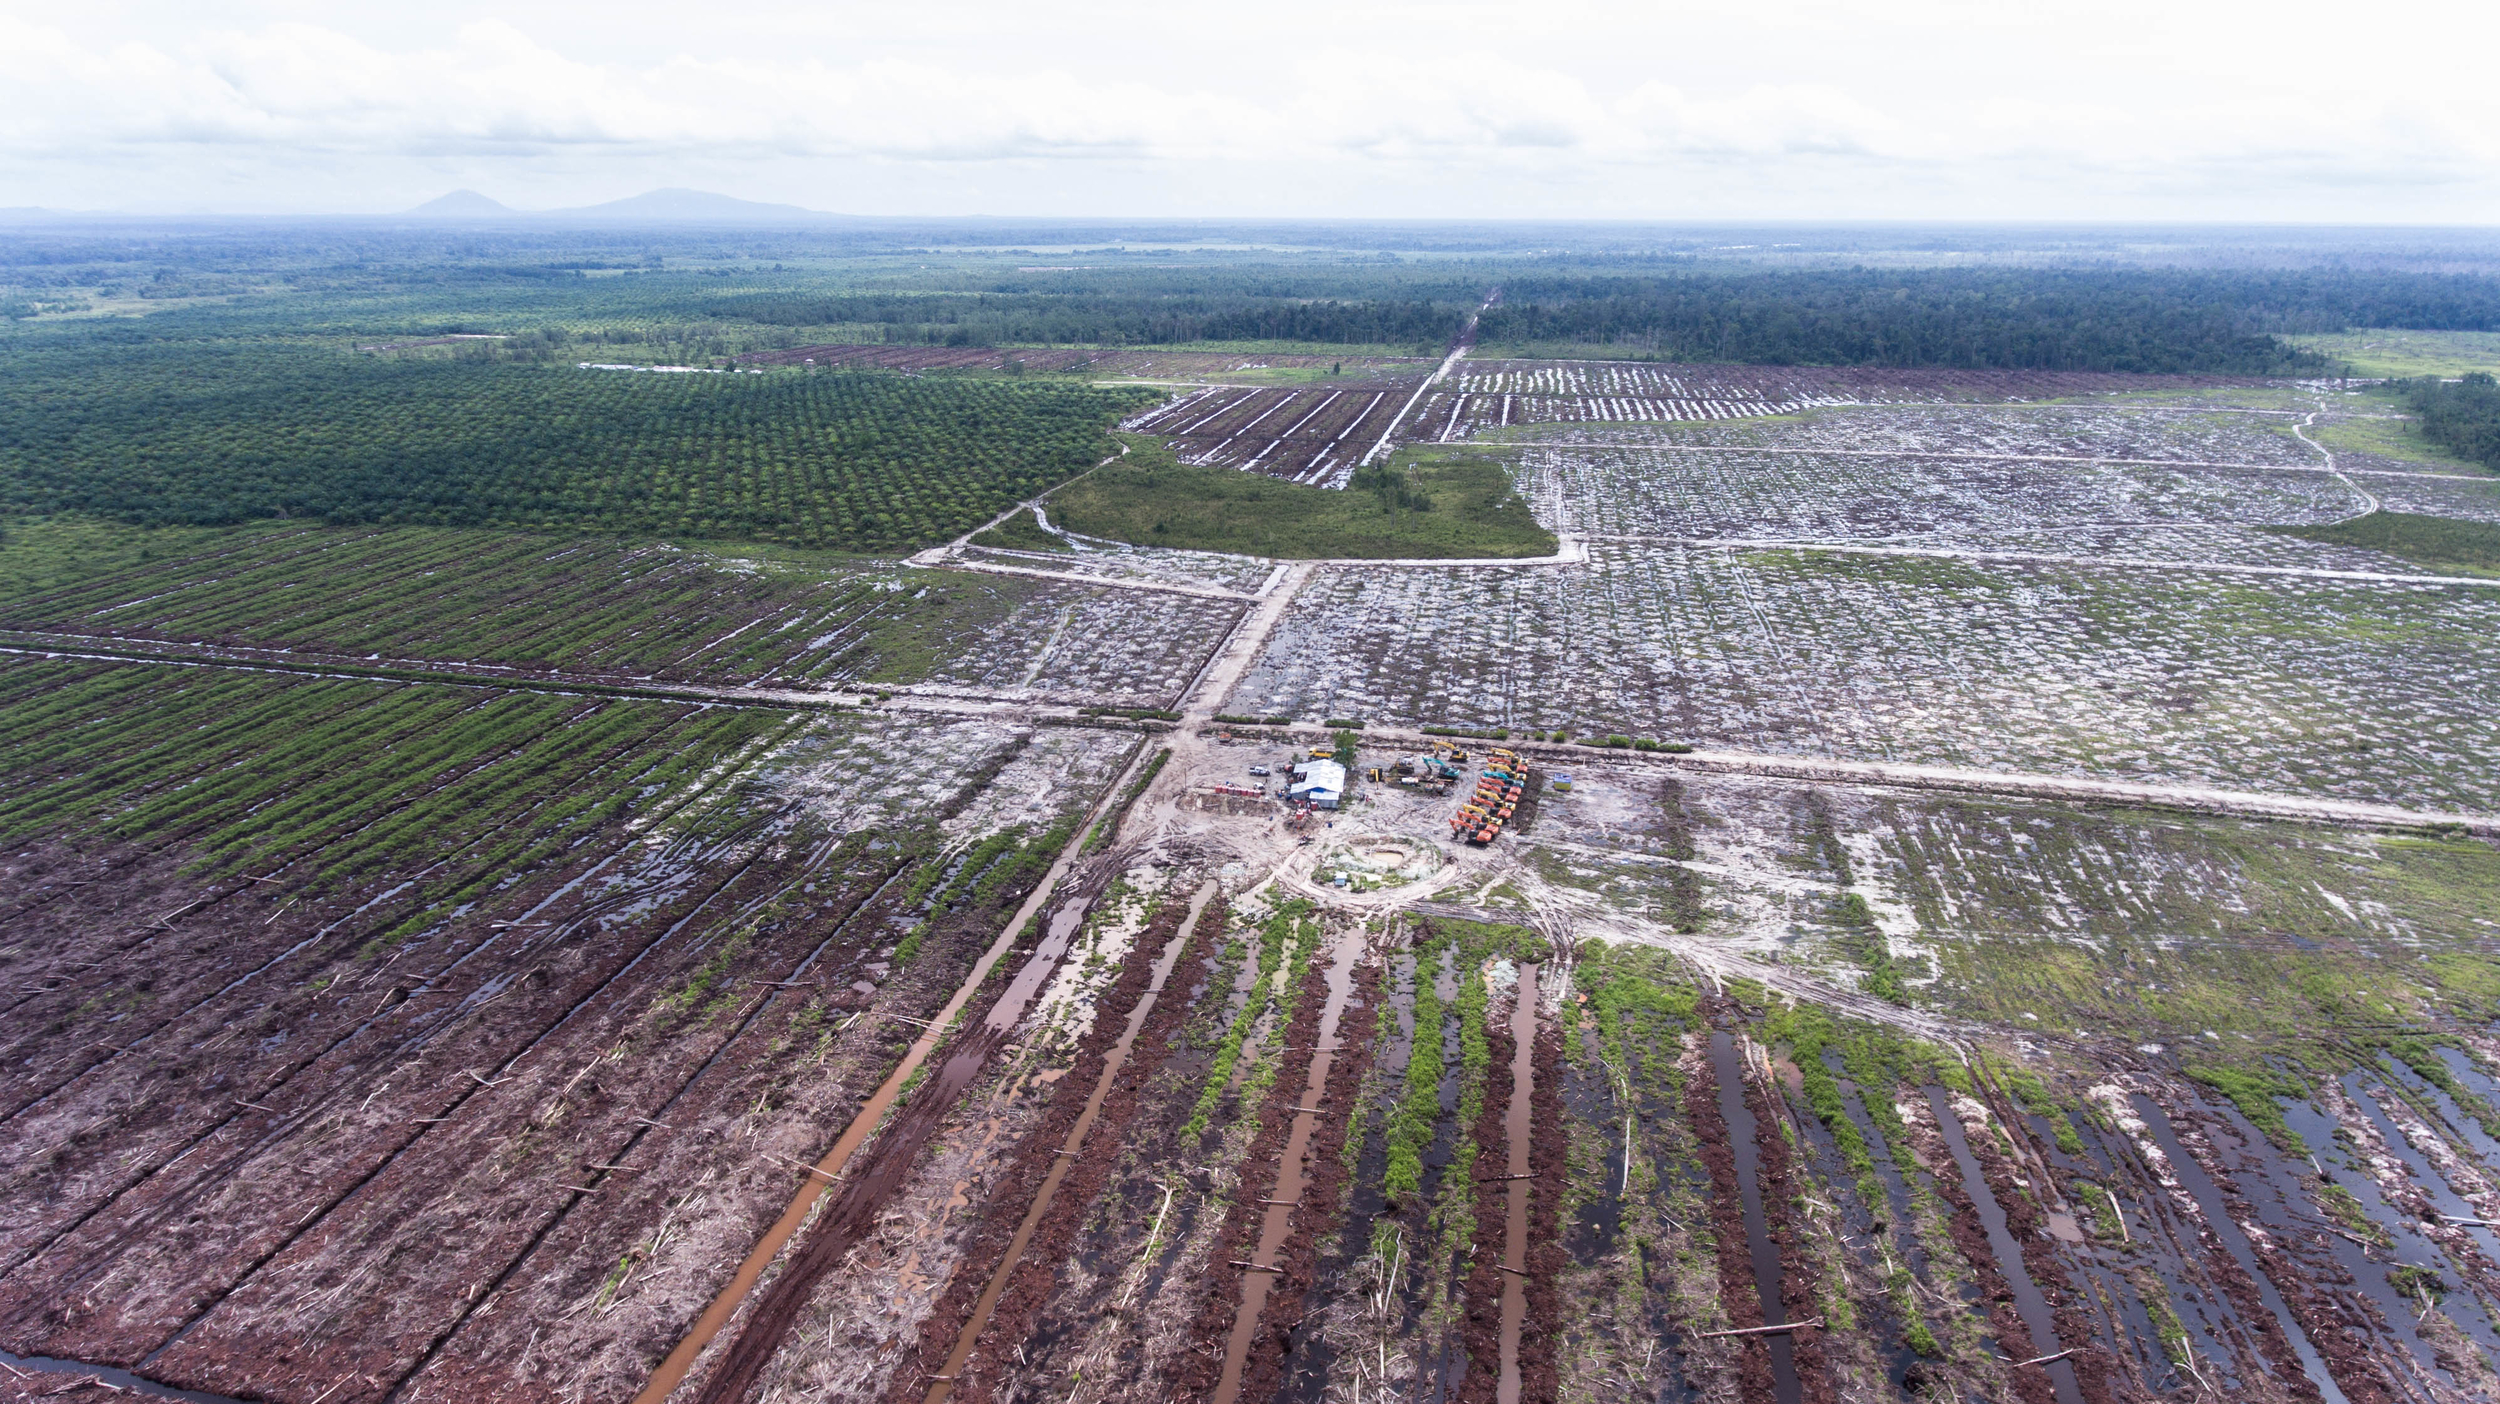 Aerial image of palm concession in West Kalimantan, Indonesia